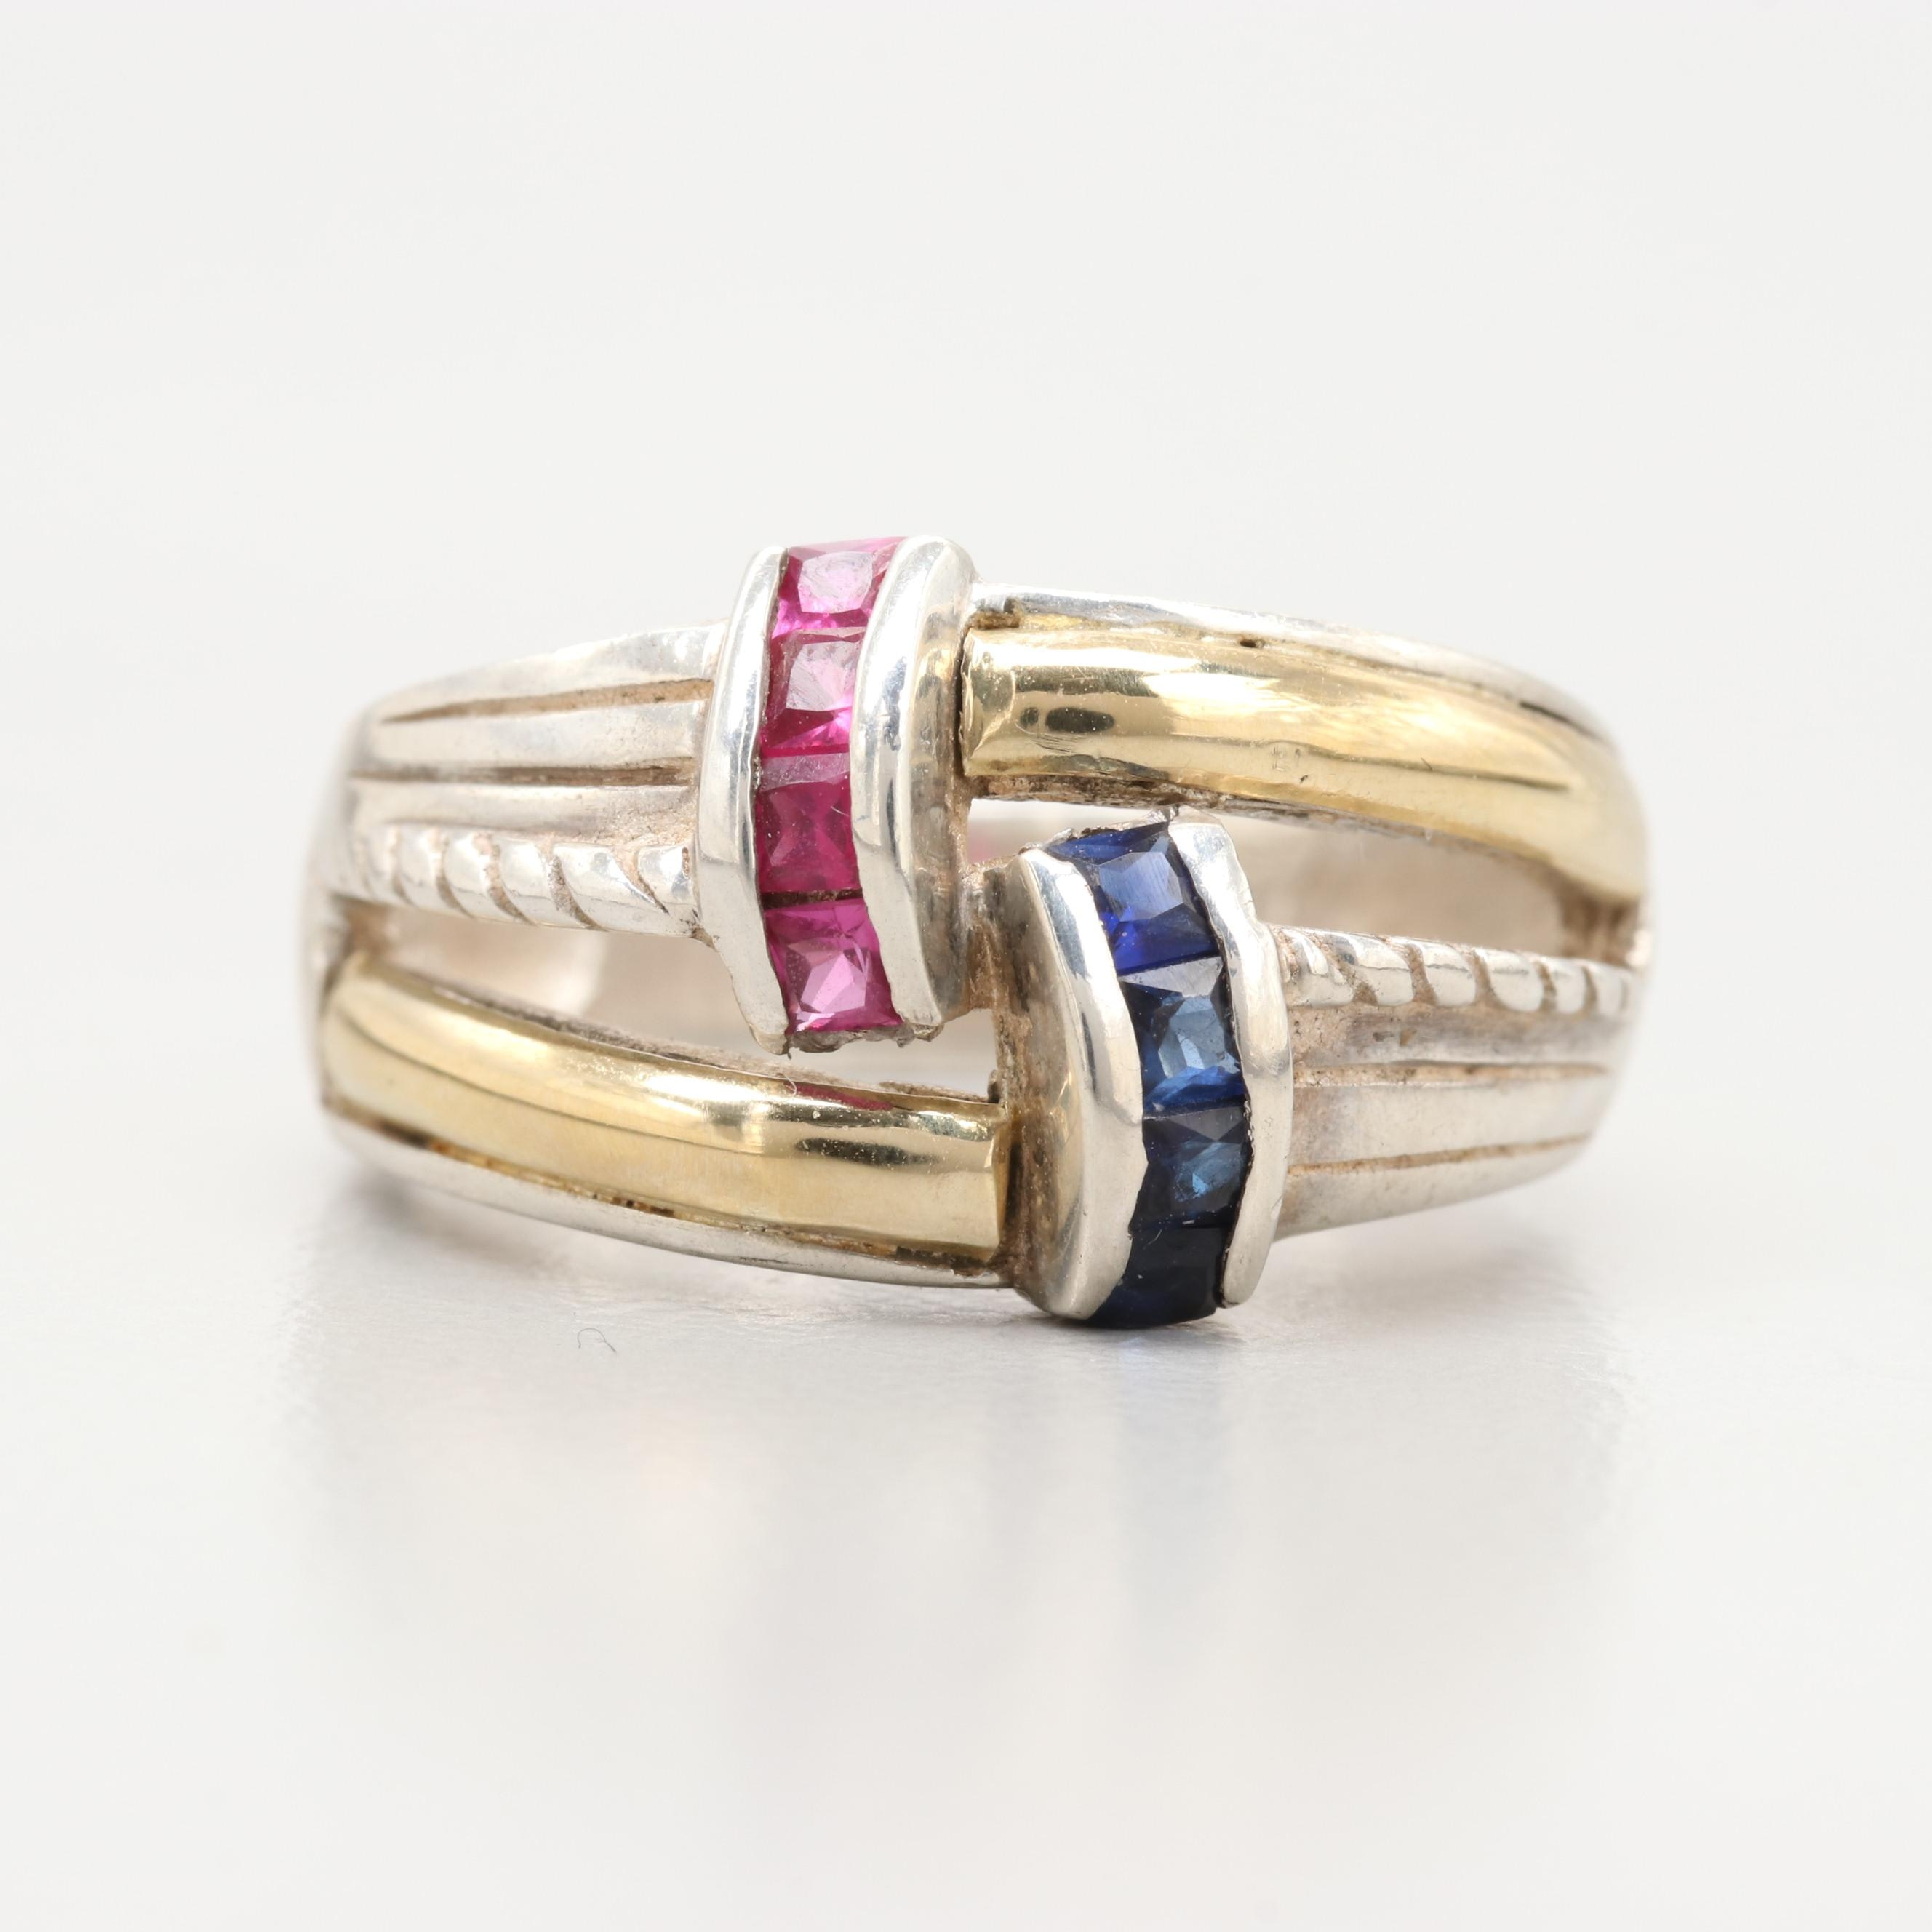 950 Silver and 18K Yellow Gold Synthetic Ruby and Synthetic Blue Sapphire Ring